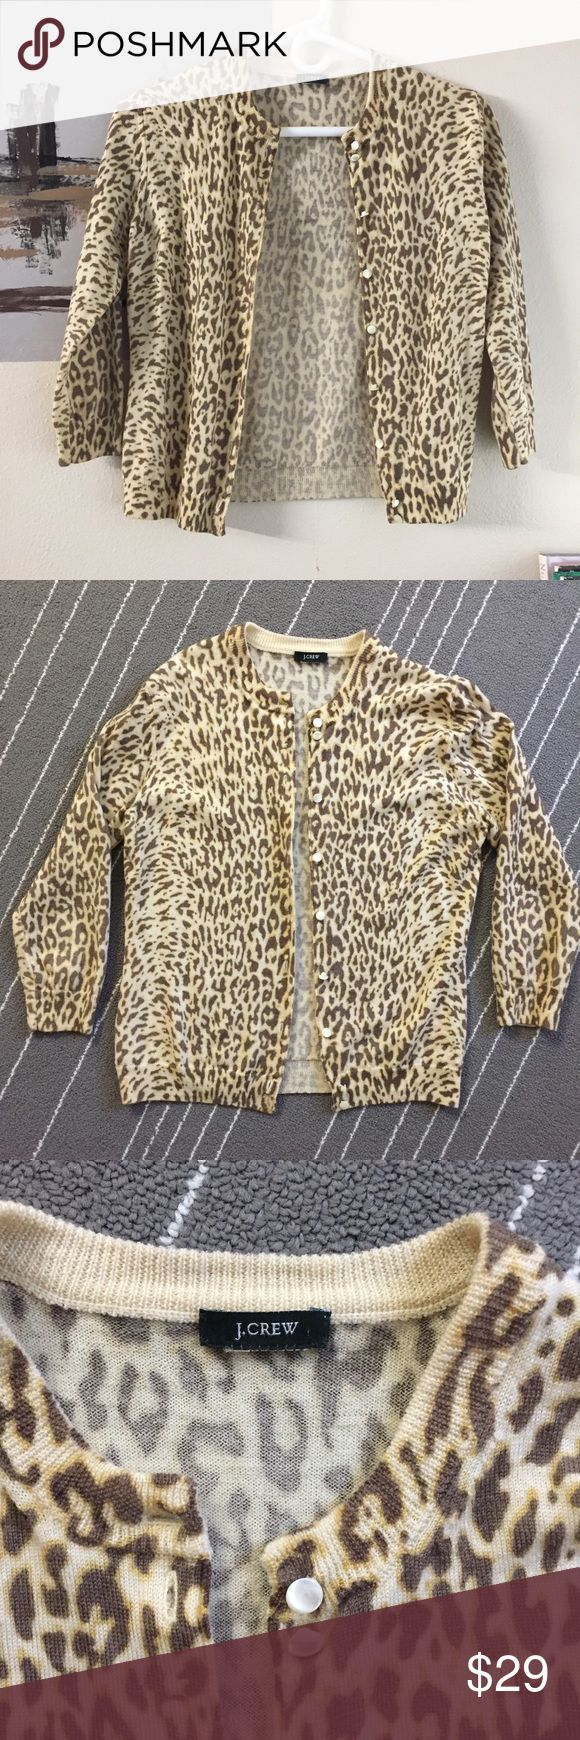 "J crew 100% wool animal print cardigan in brown J crew animal print cardigan brown in color. 100% wool. Size is small. Arm pit to arm pit is about 15"" and length is about 19"". Sleeves are 16"". Size tag has been removed. In excellent condition, no peeling or holes or stains. Ask if have any other questions. J. Crew Sweaters Cardigans"